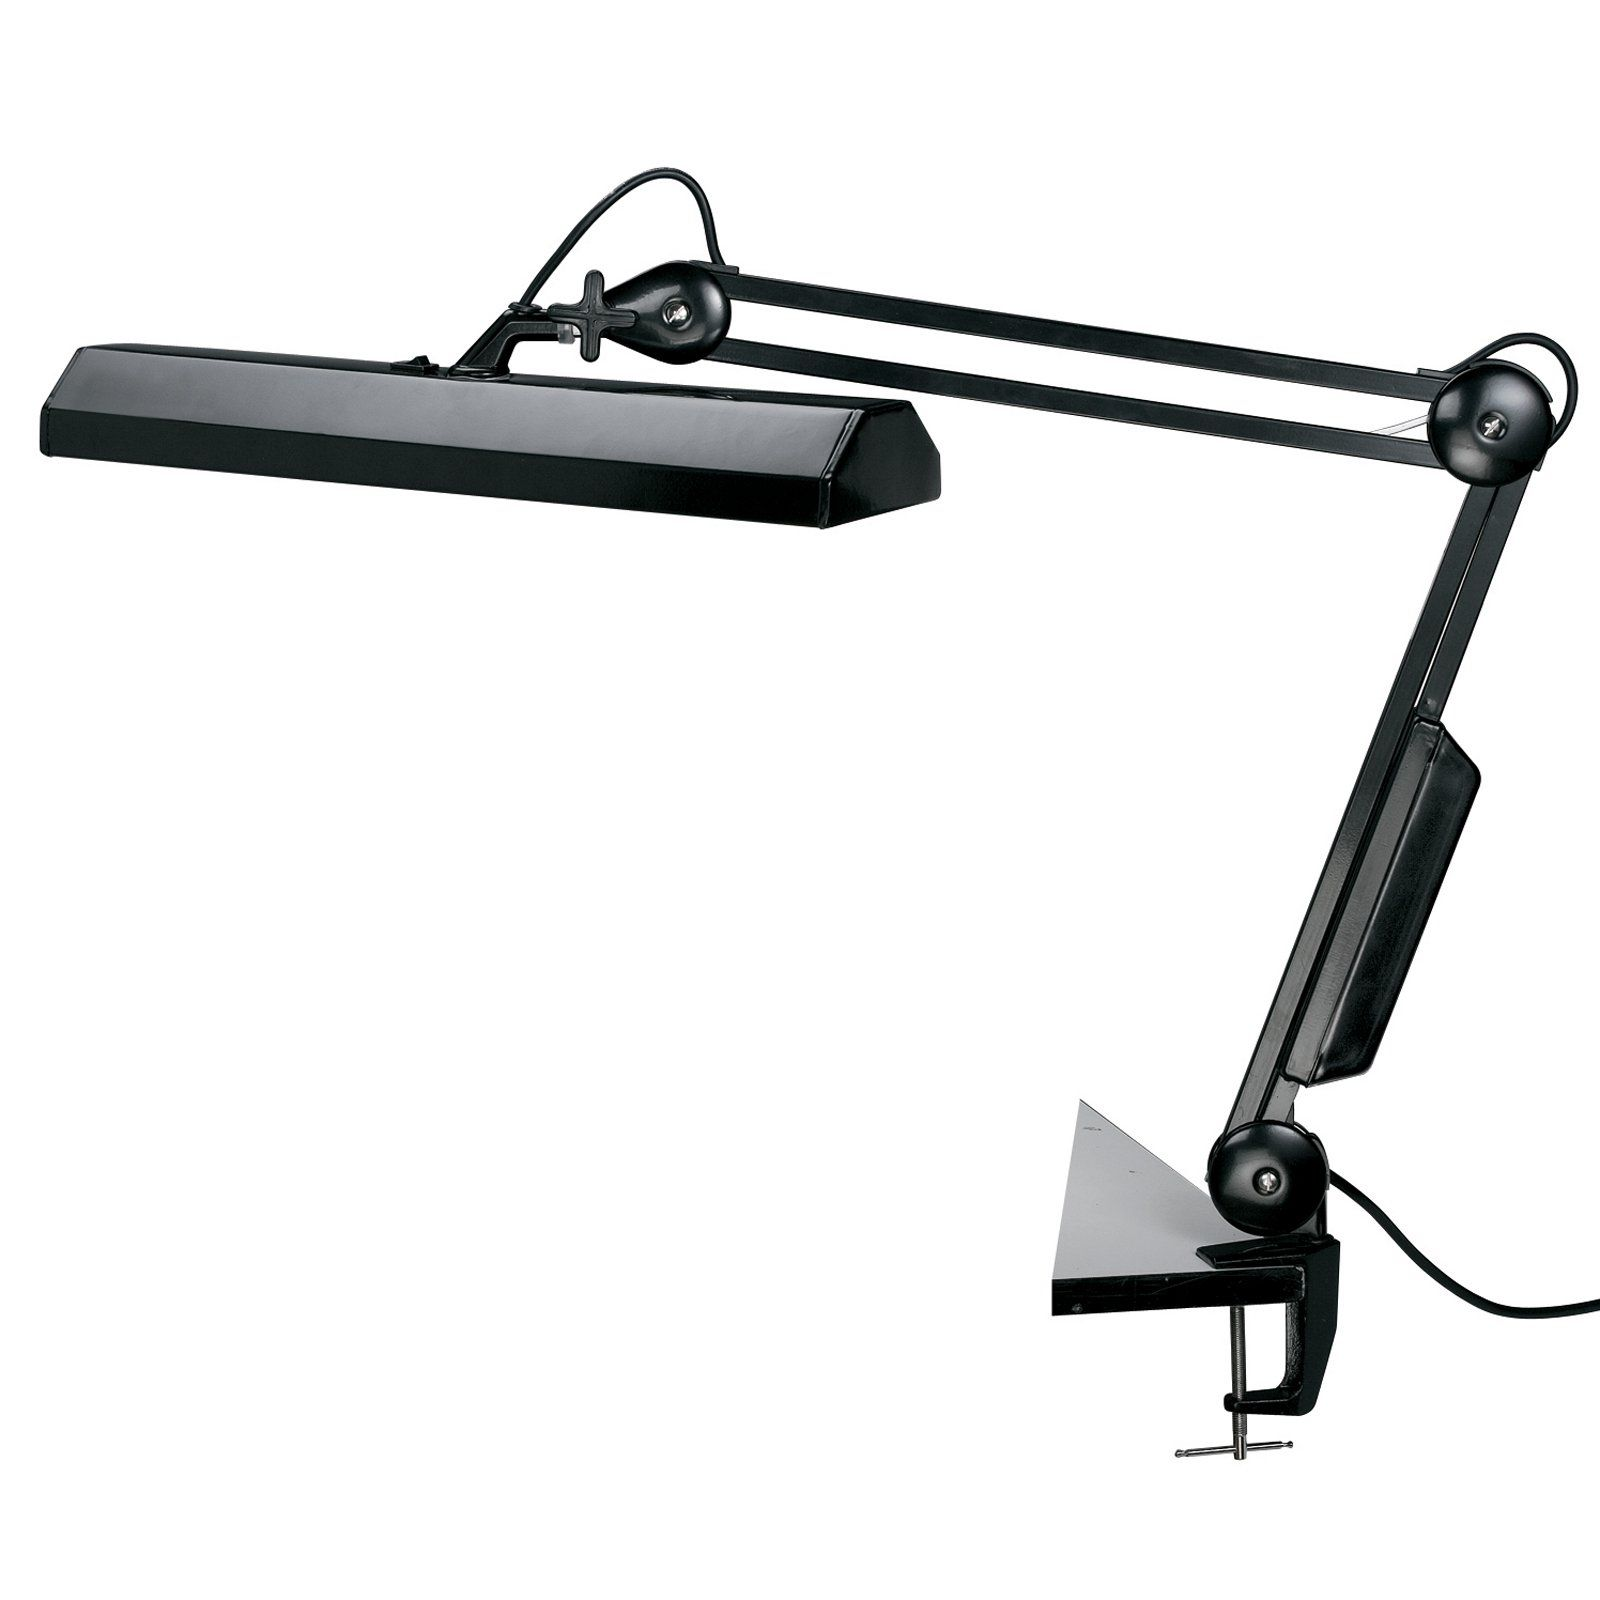 Alvin Fluorescent Task Clamp Light - We're shining the spotlight on one of the best task lights you can buy. For crafters or drafters, homes or offices, the Alvin Fluorescent Task...